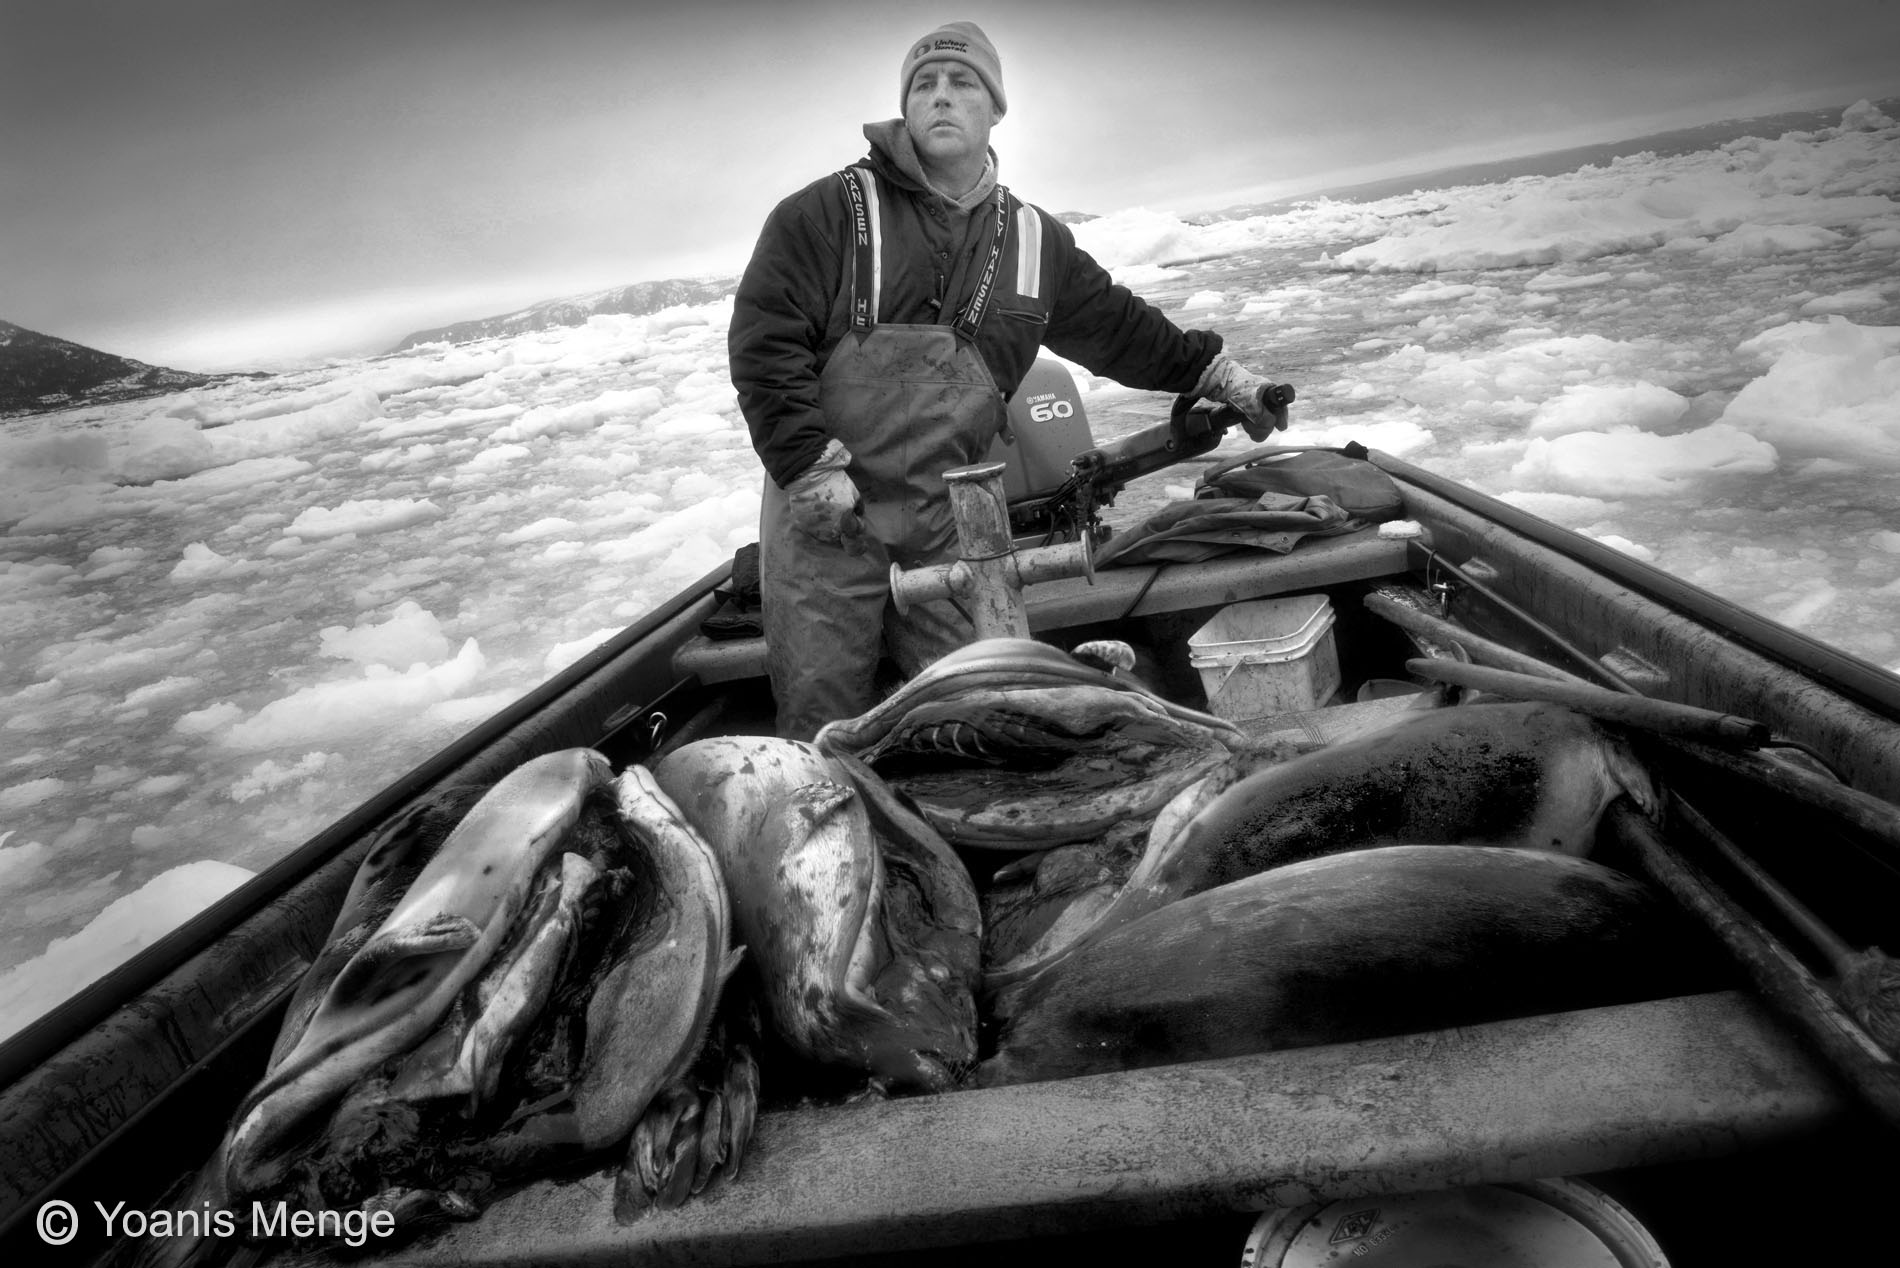 Seal Harvest (17) - Yoanis Menge Photographe - Canadian Seal Products